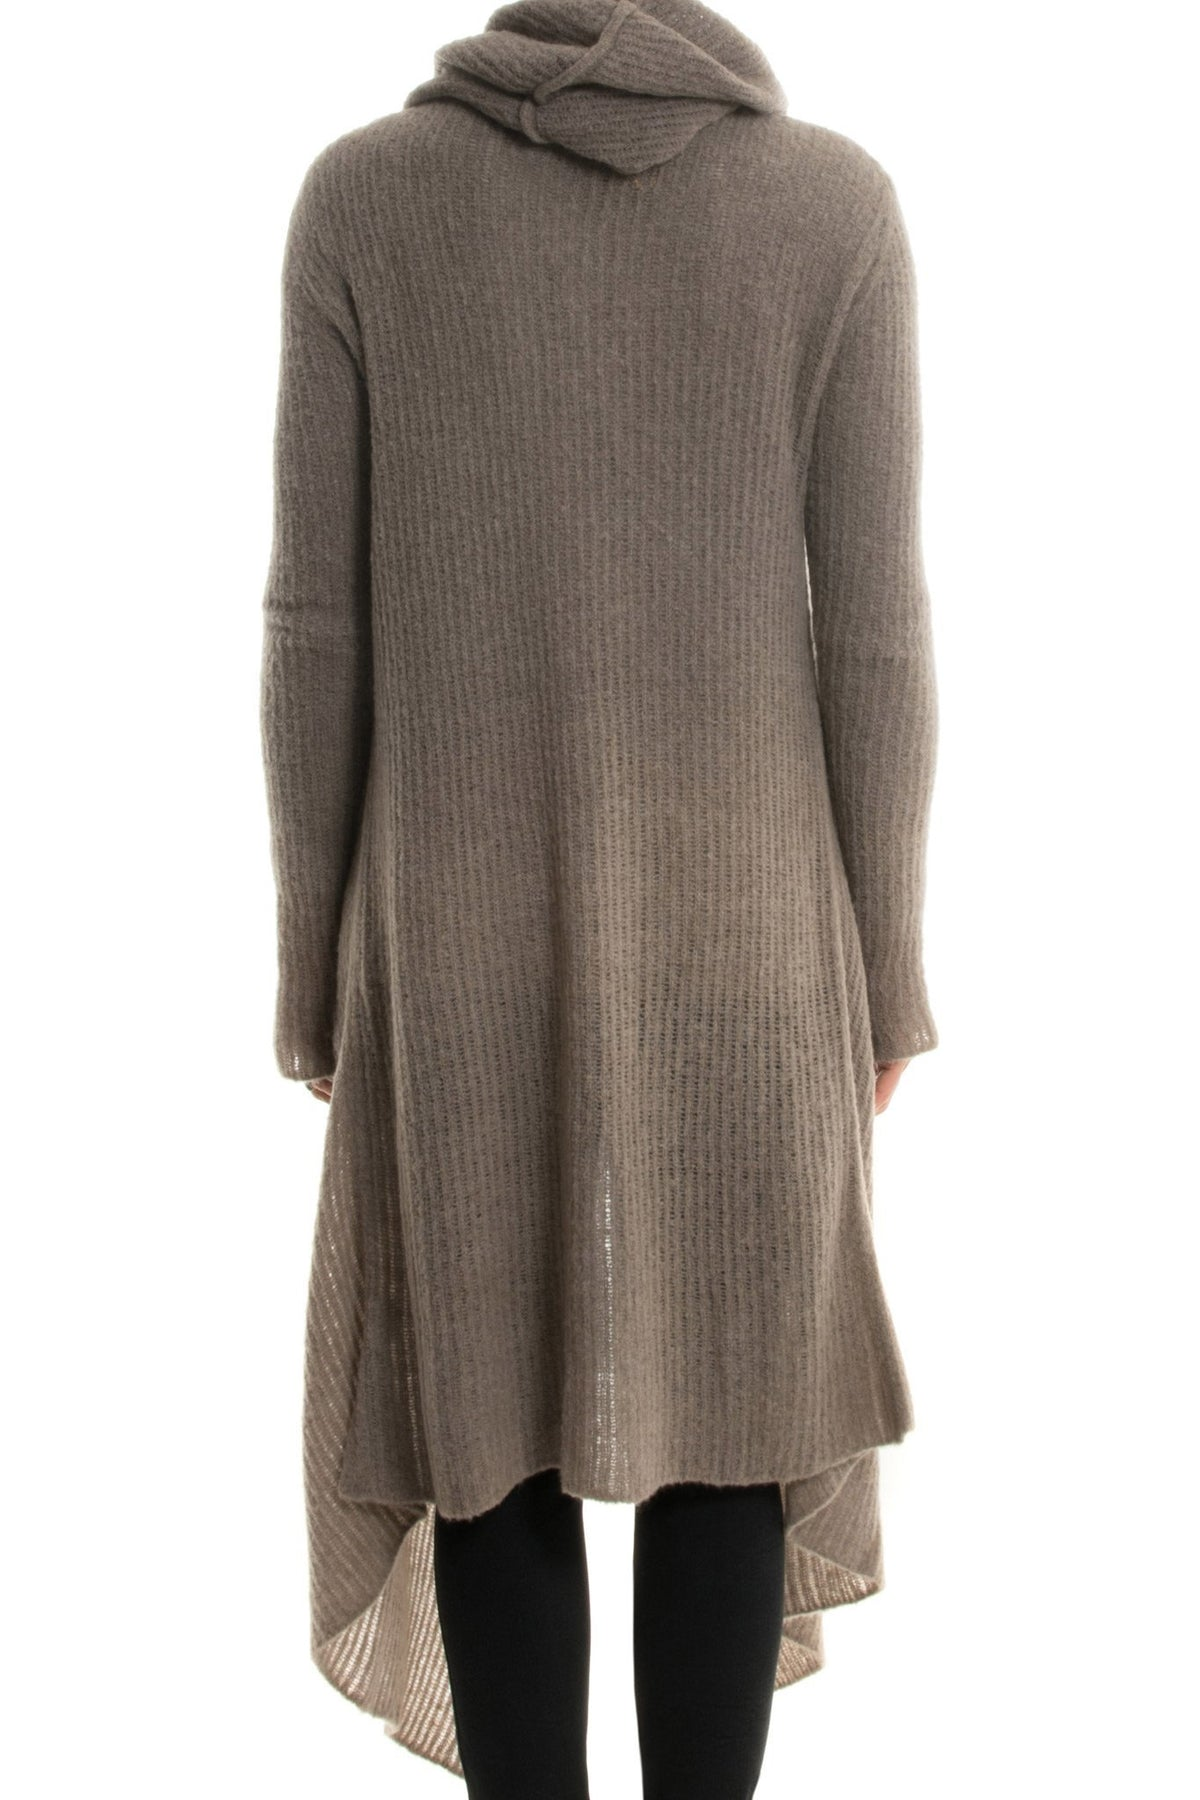 Cora Long Hooded Sweater in Taupe (2012114092125)